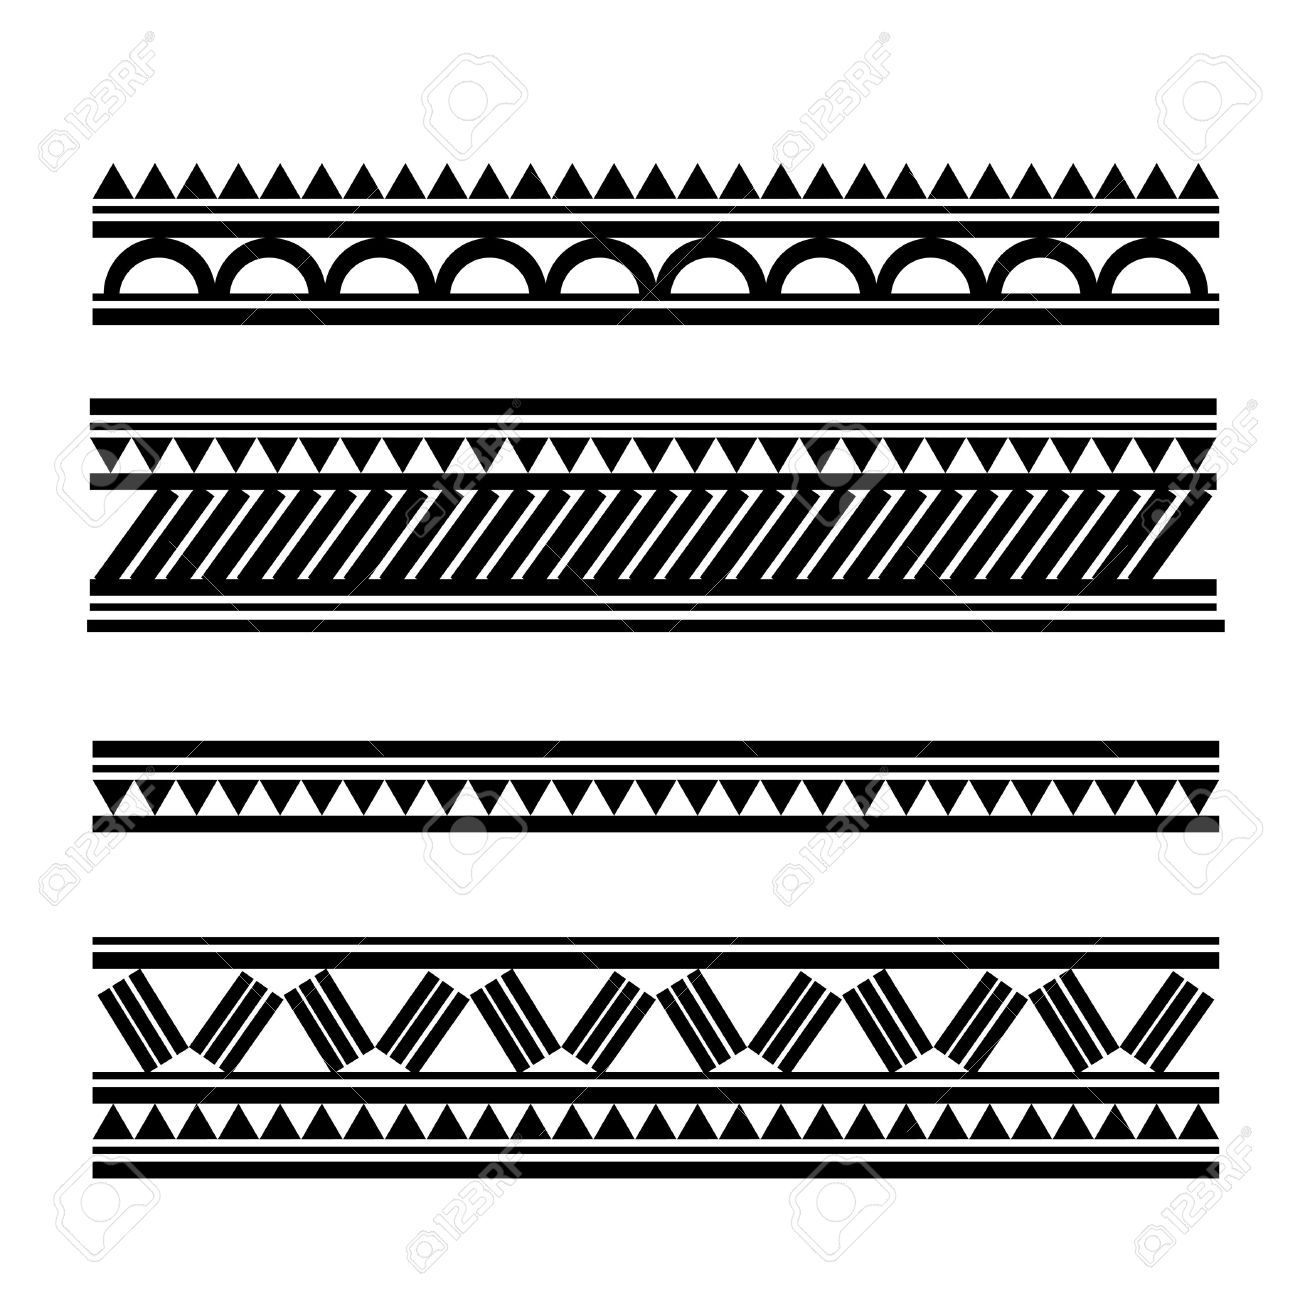 13361811 maori polynesian style tattoo bracelet stock. Black Bedroom Furniture Sets. Home Design Ideas